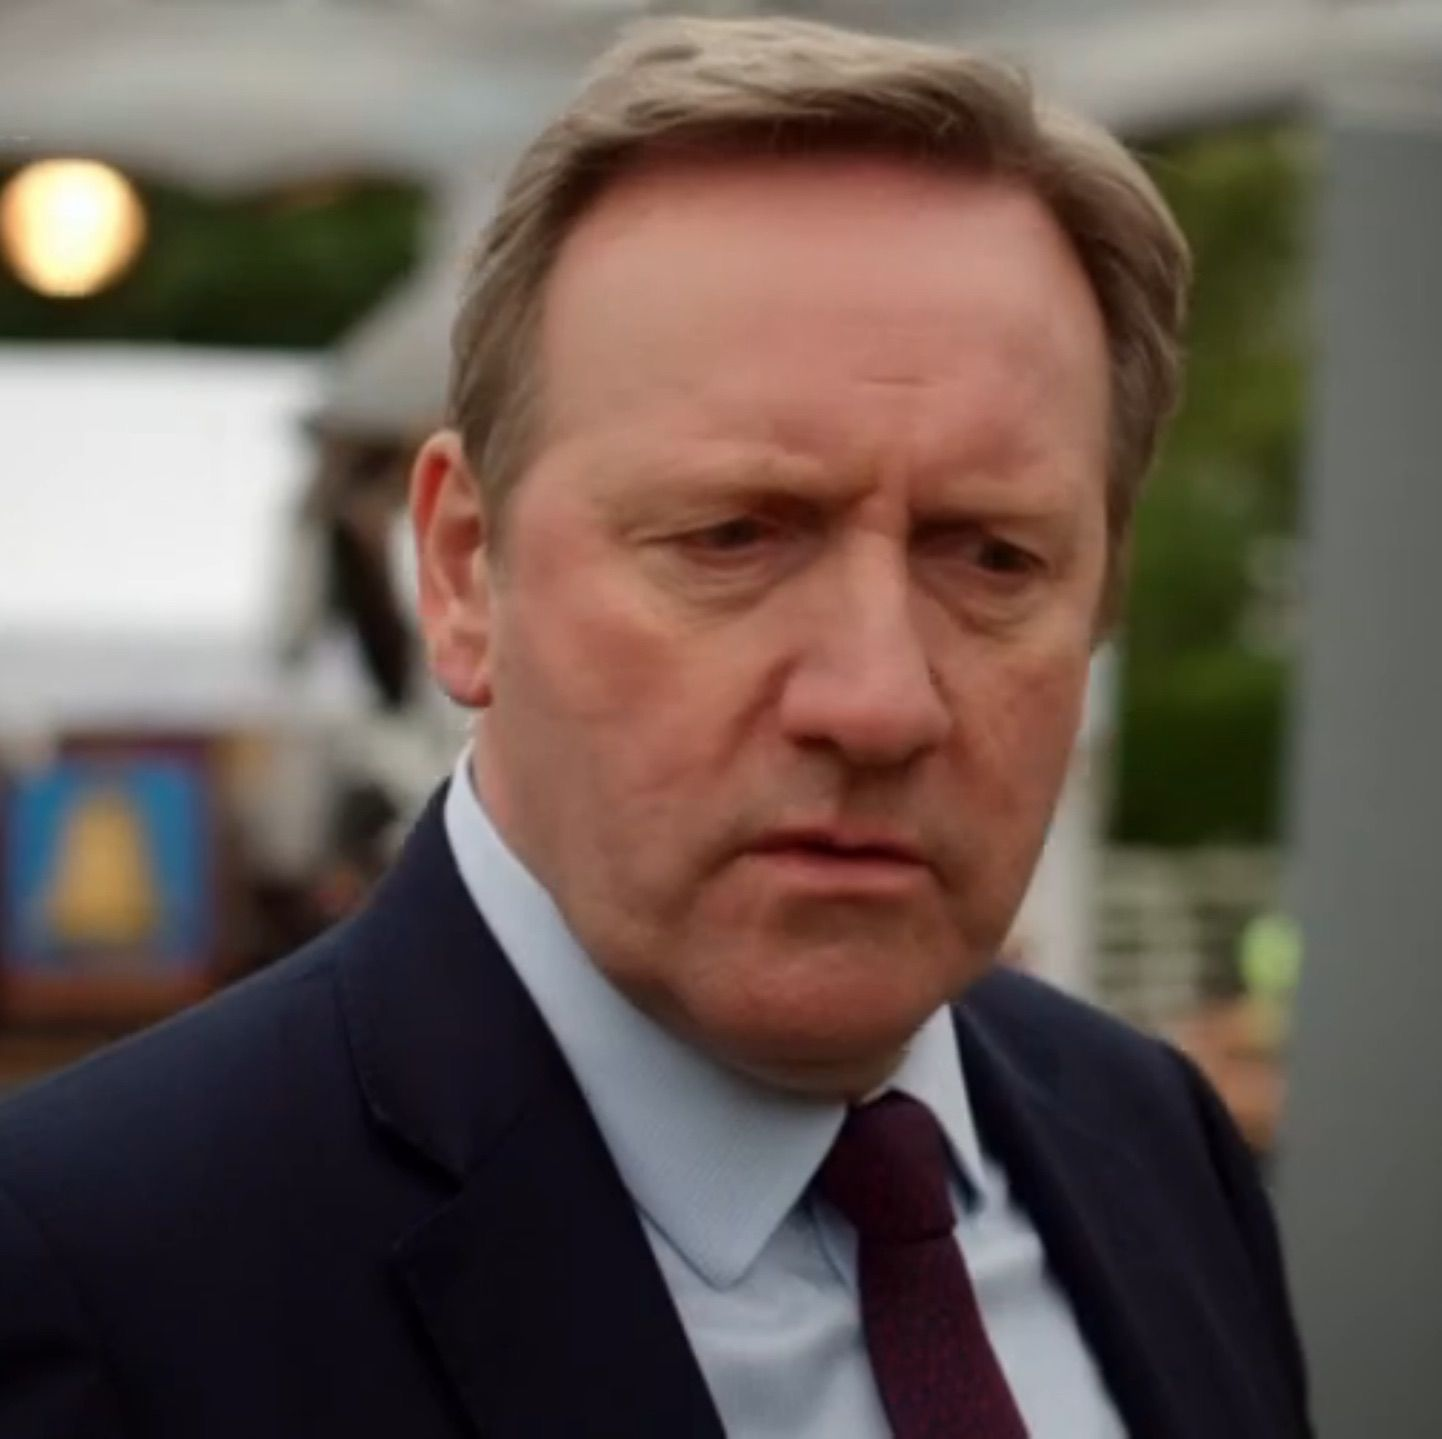 Midsomer Murders just gifted fans with a seriously weird murder weapon